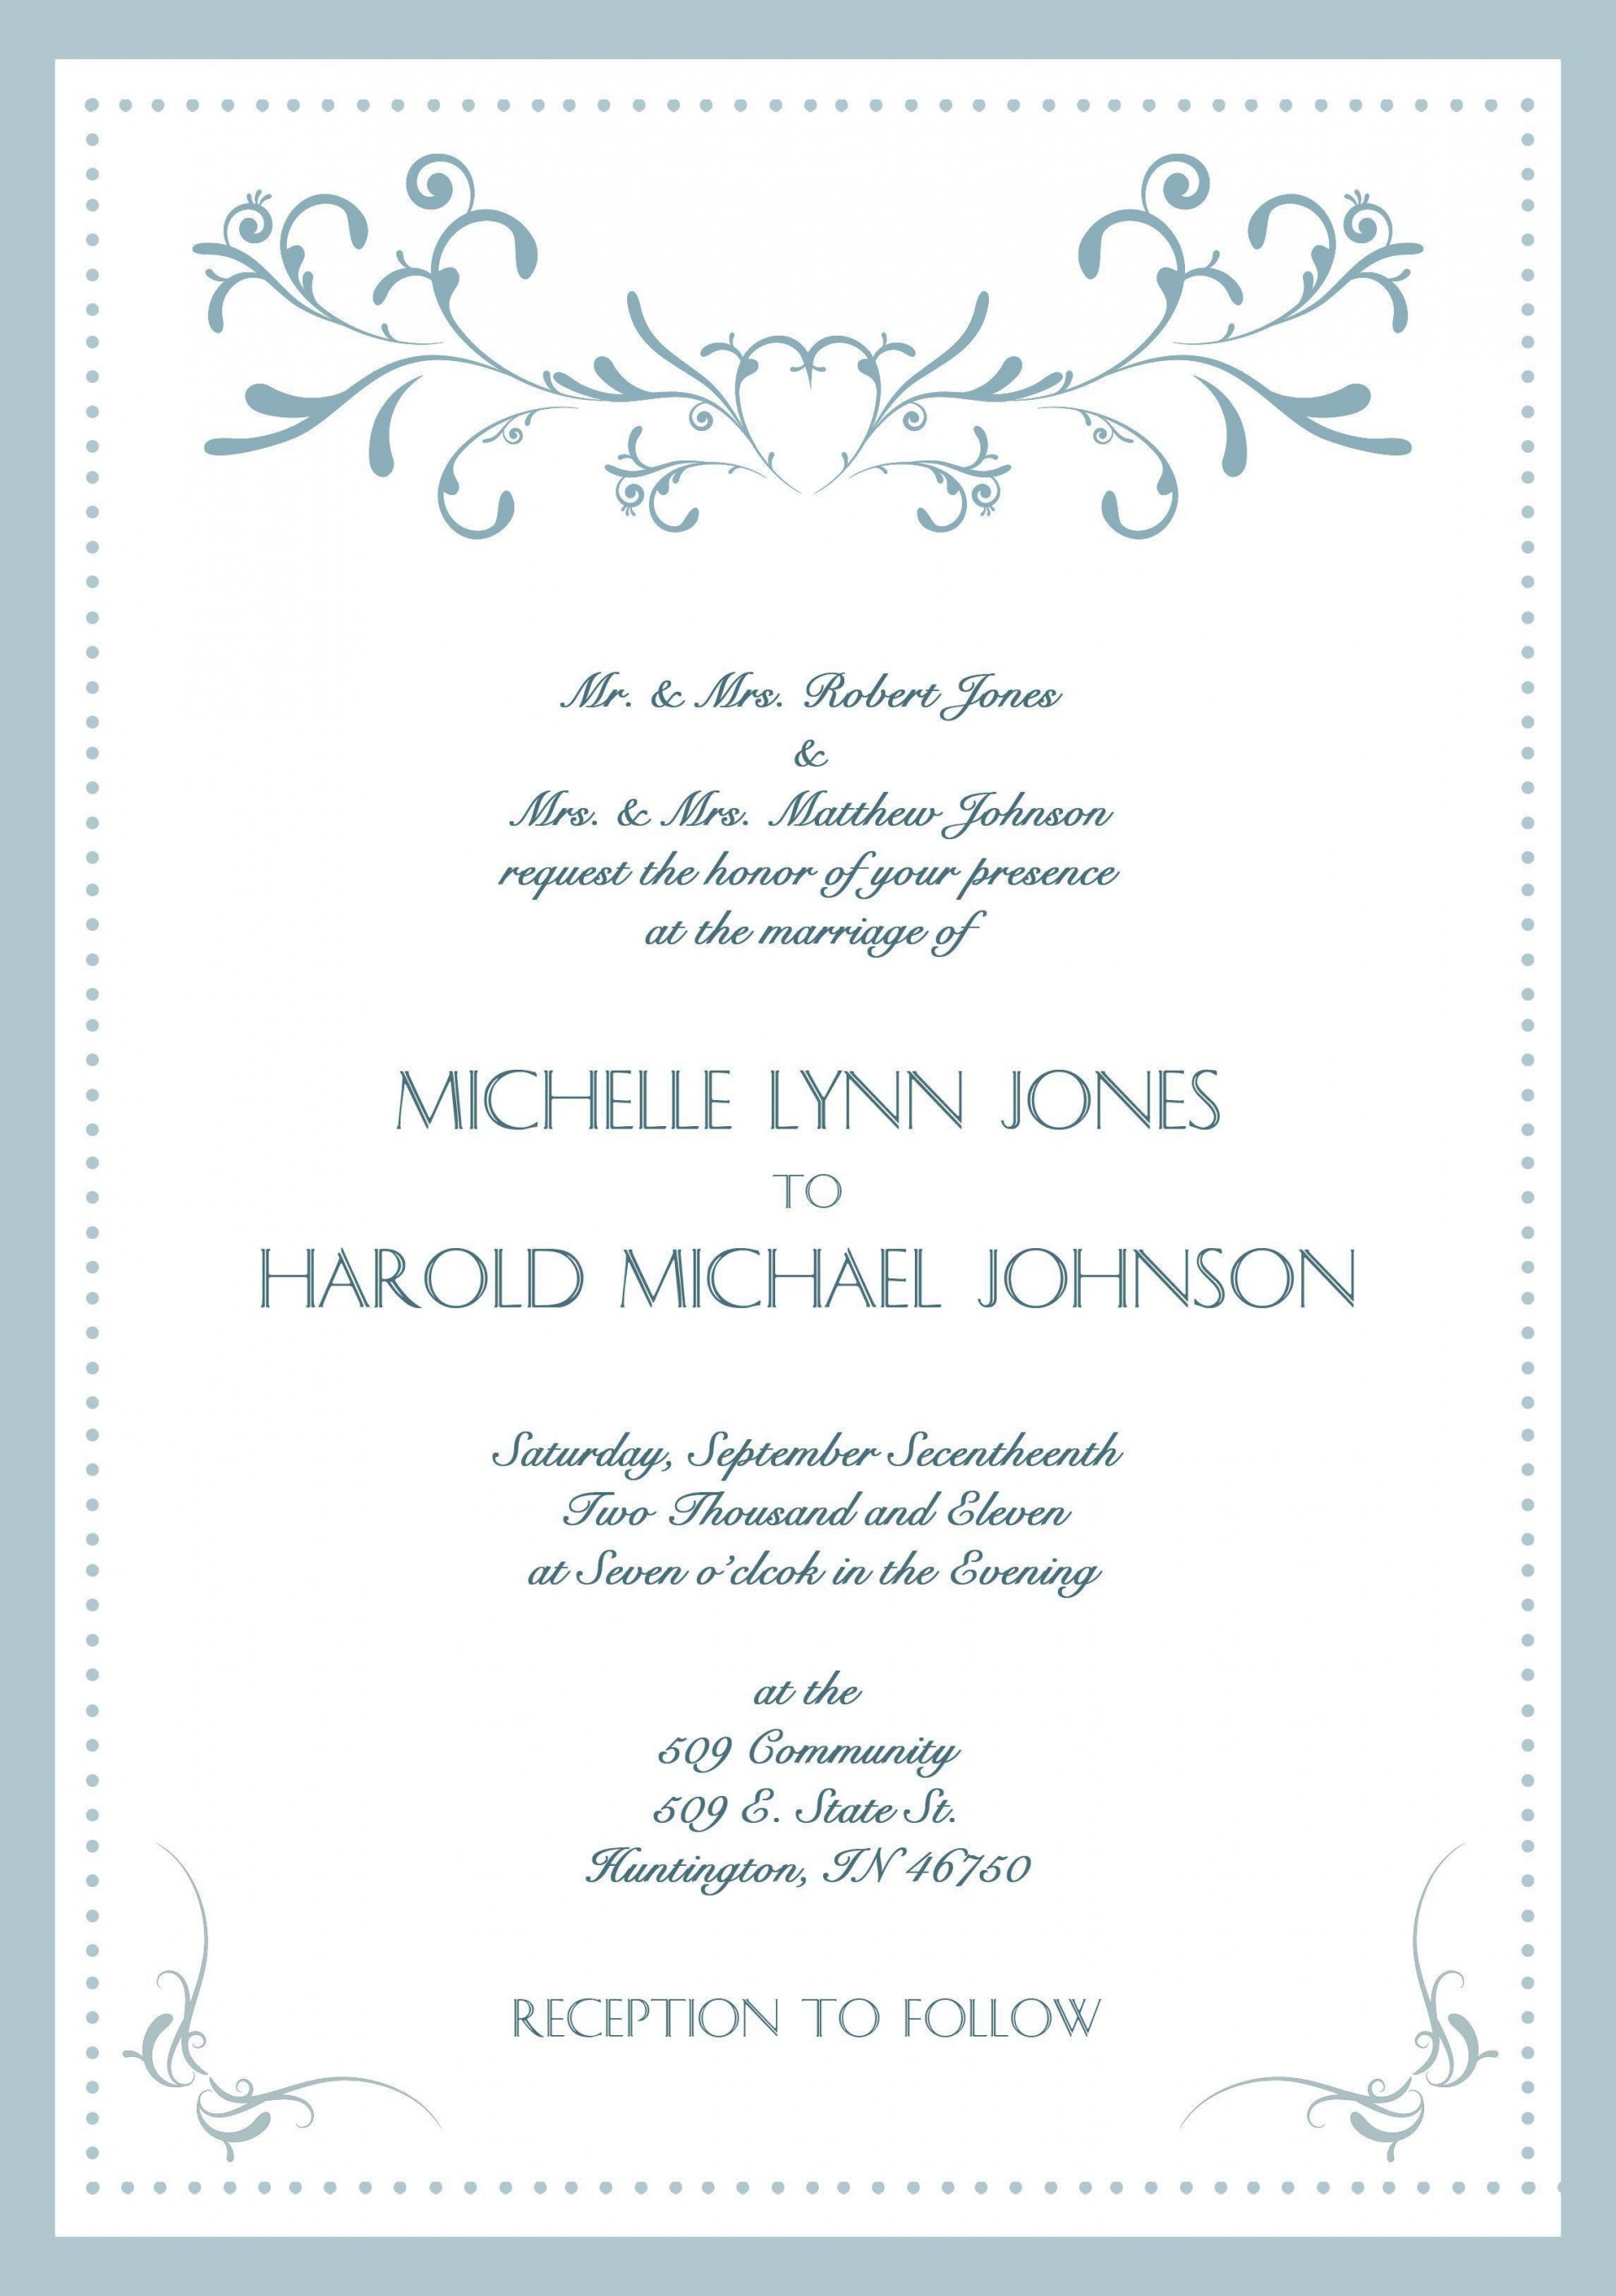 004 Exceptional Formal Wedding Invitation Wording Template High Definition  Templates1920